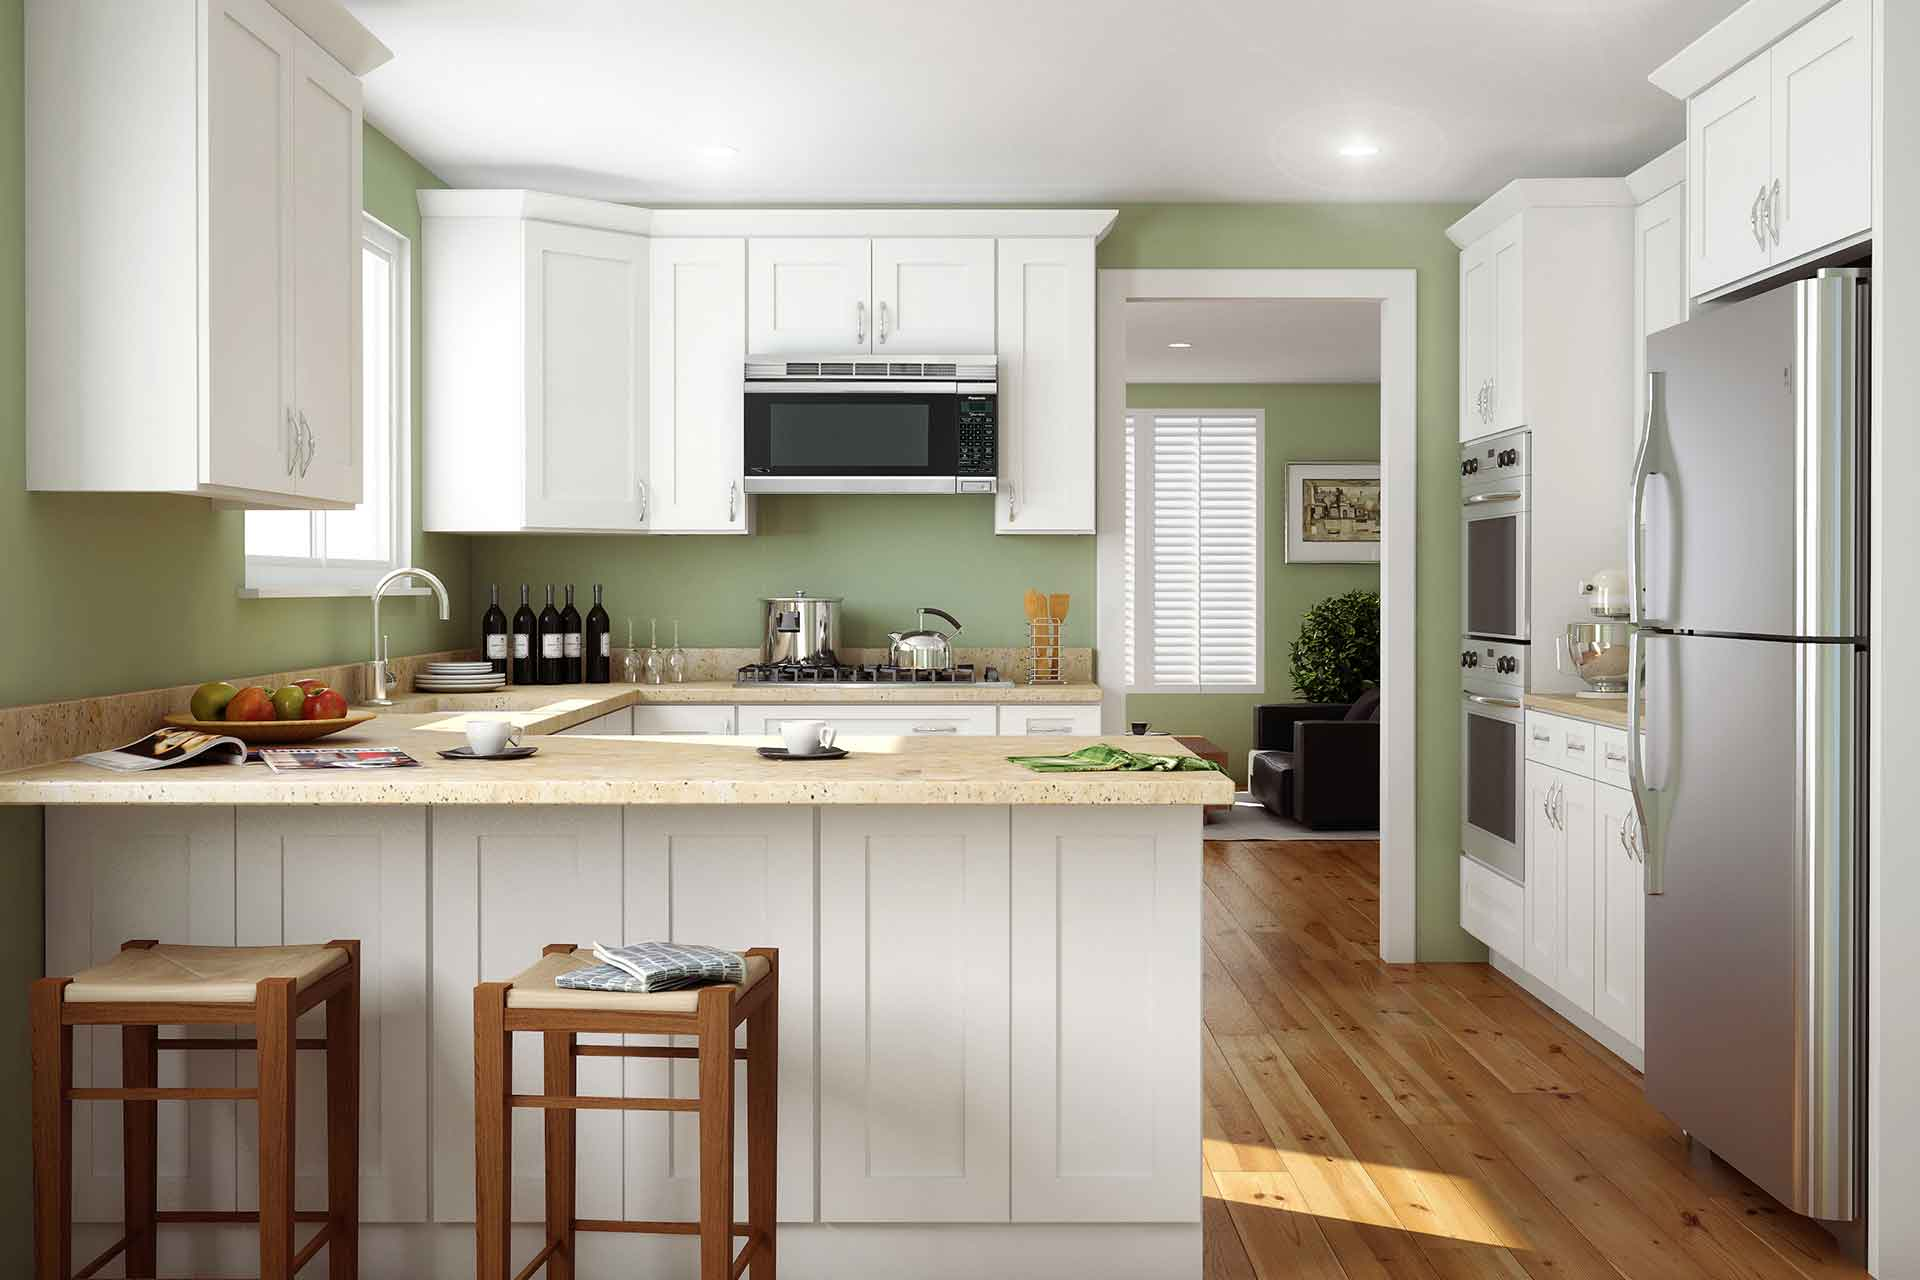 How much do RTA kitchen cabinets cost - person shopping for kitchen cabinets